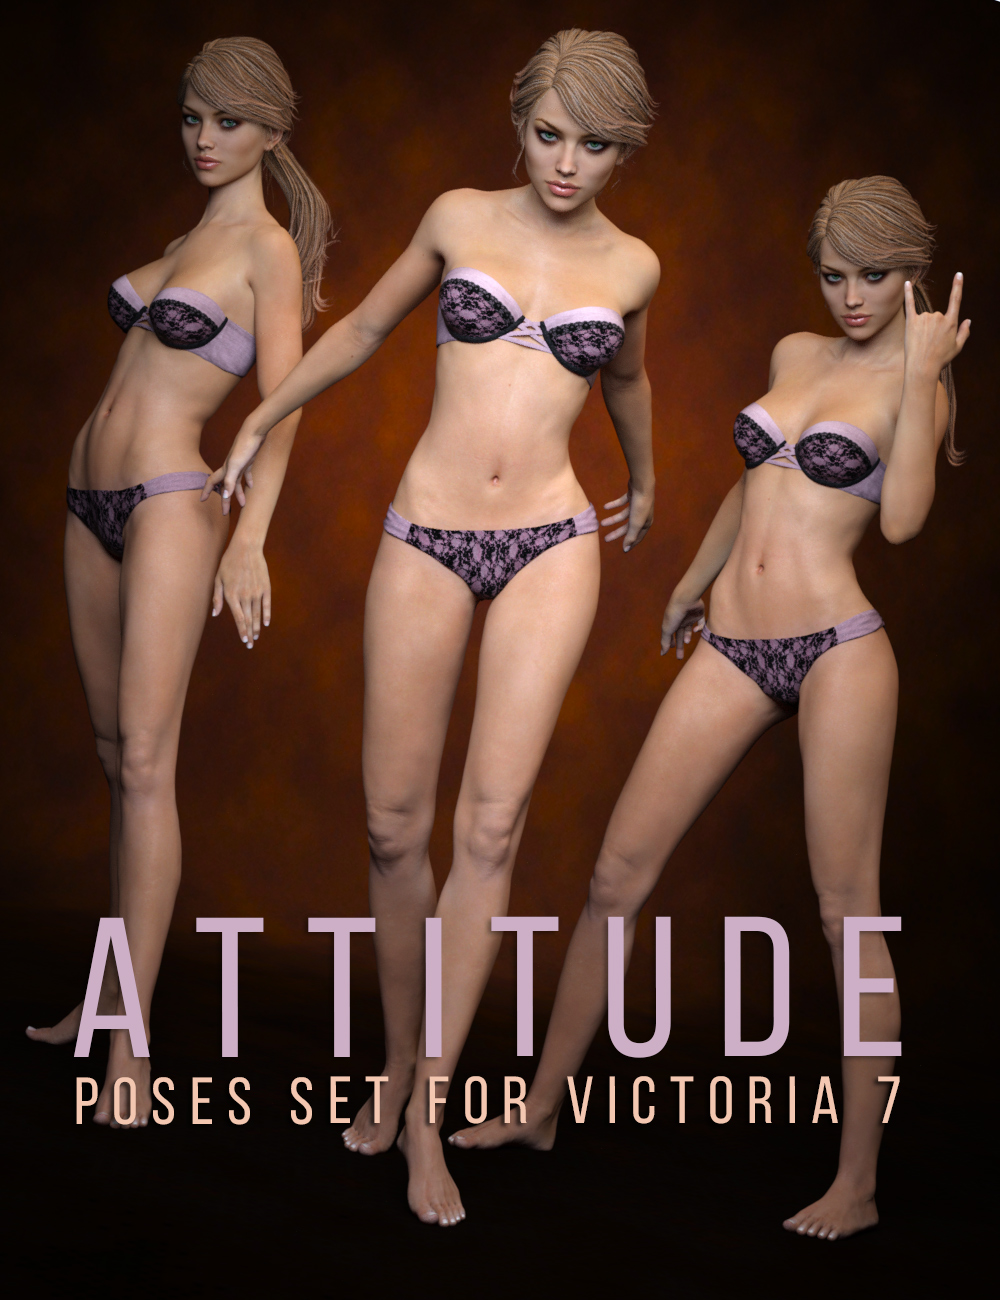 Victoria 7 Attitude Poses by: Cake One, 3D Models by Daz 3D